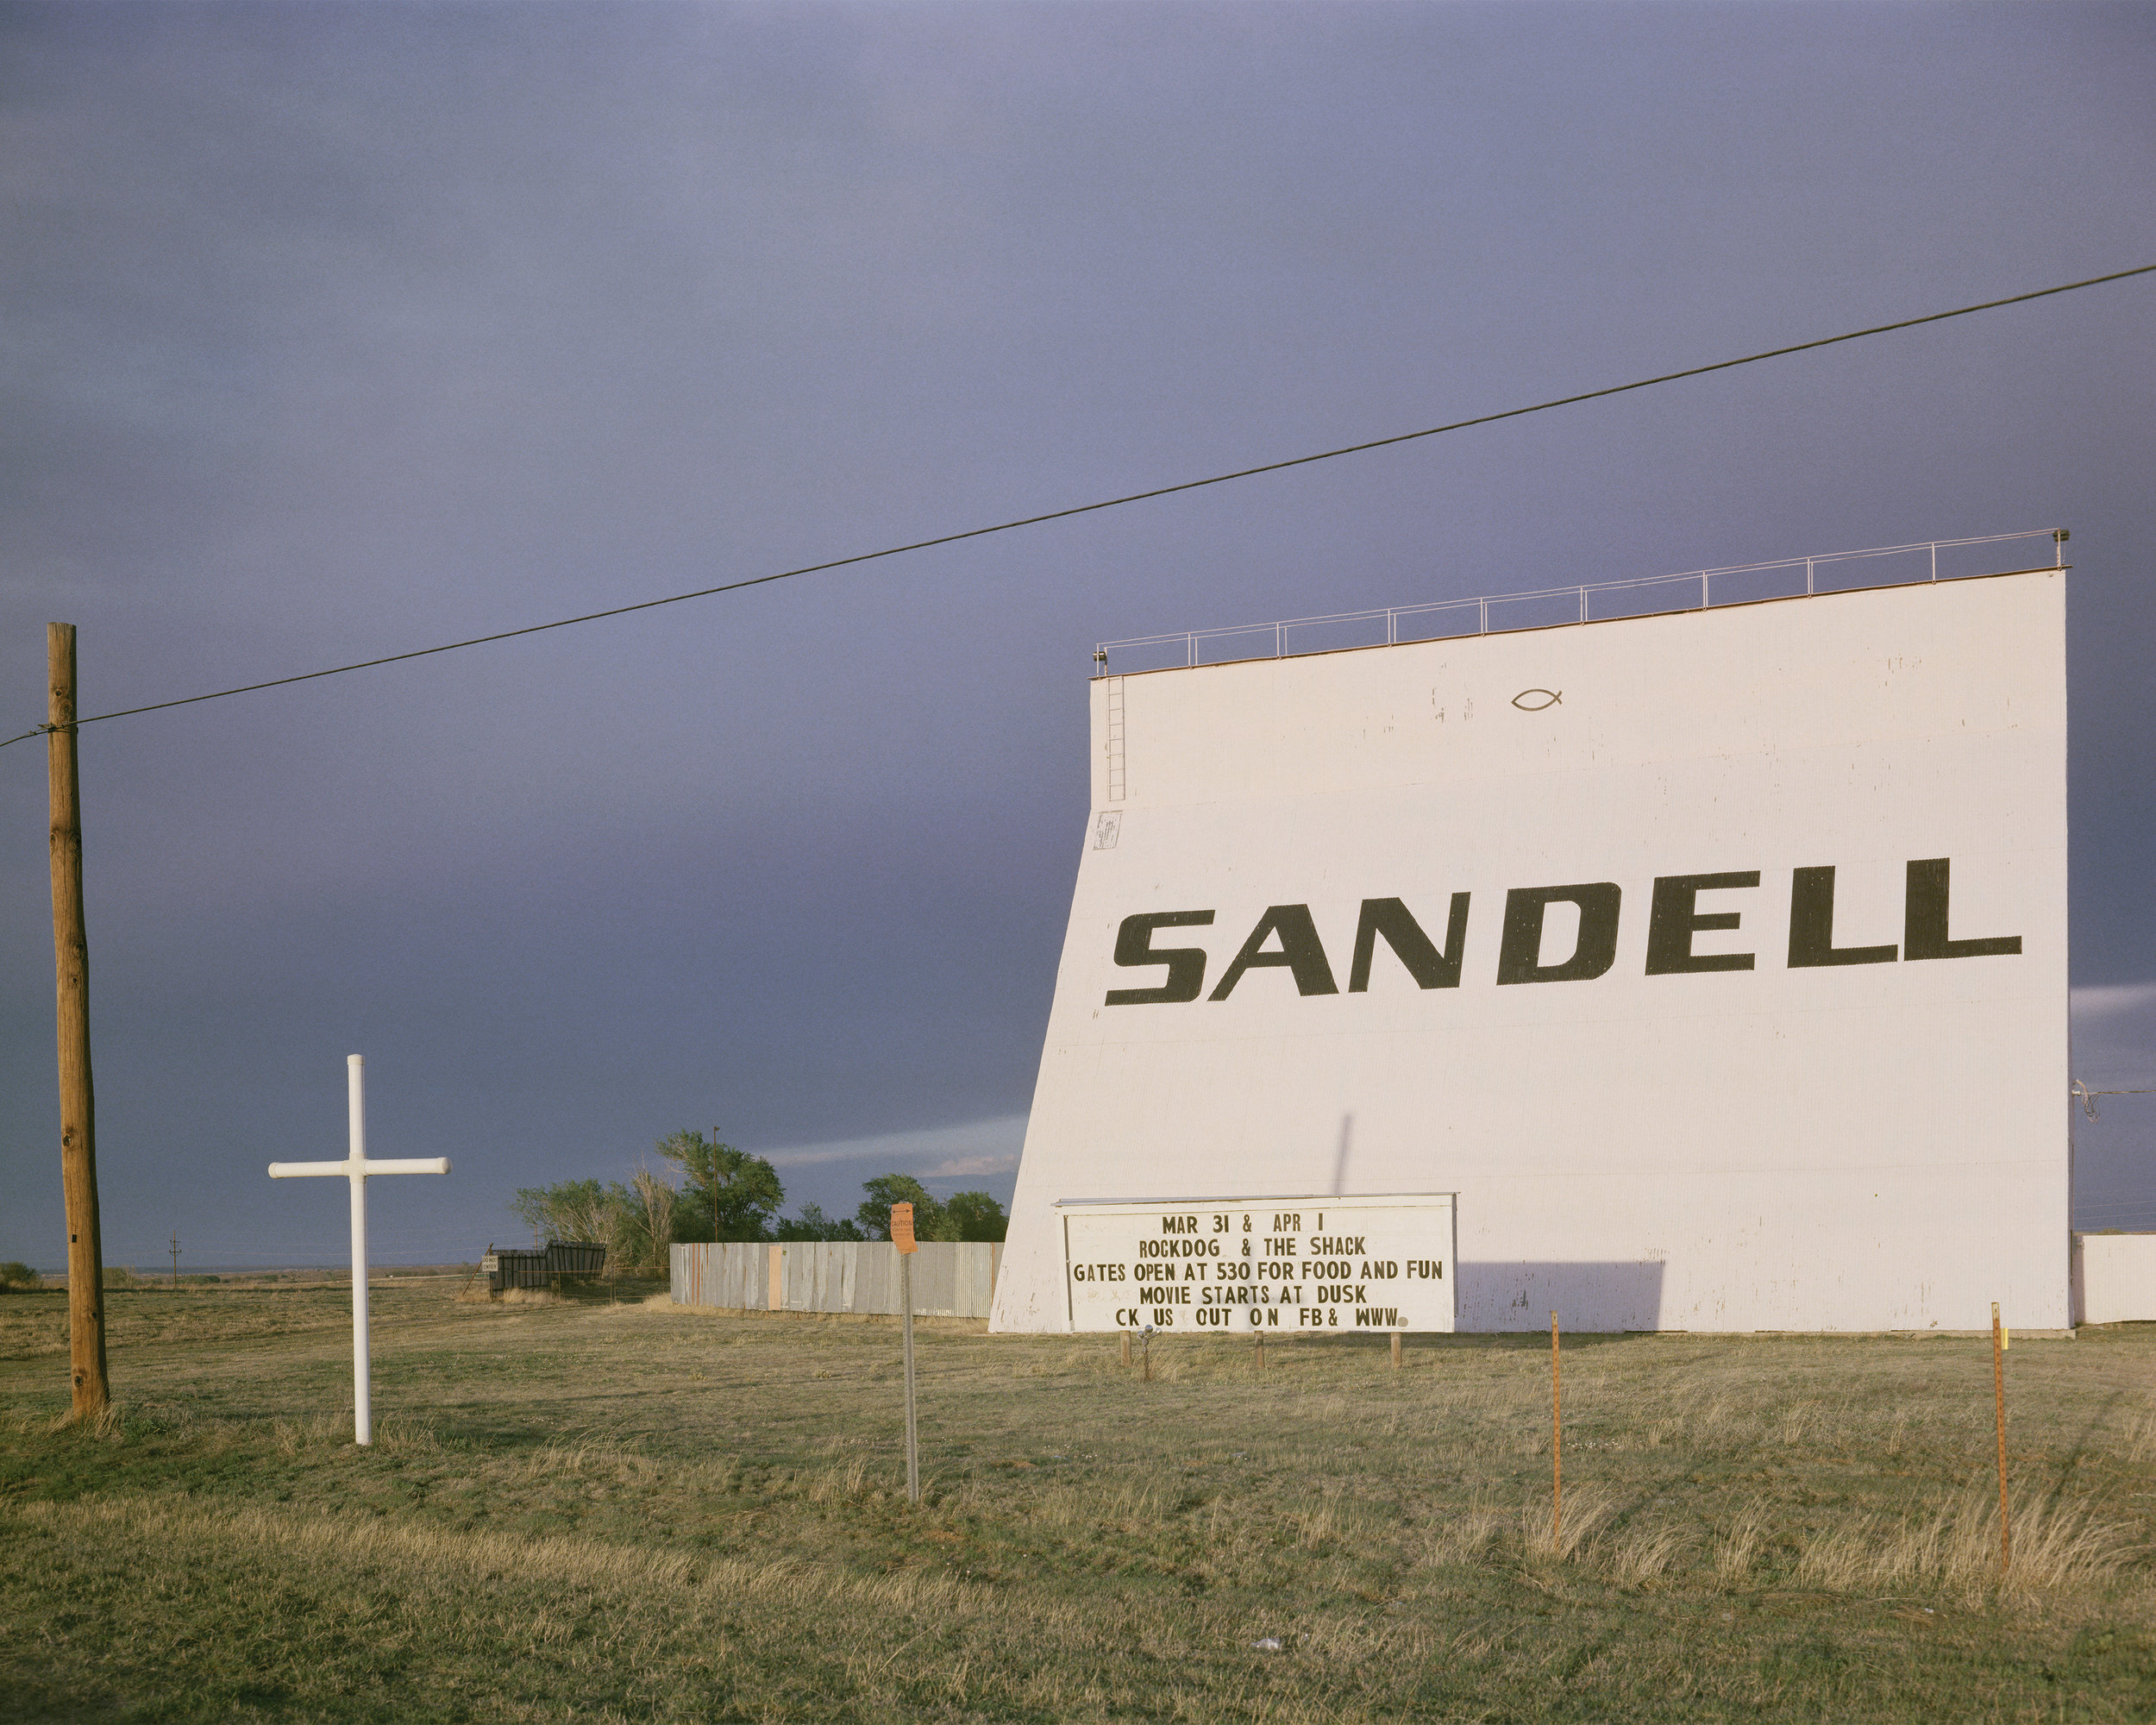 Sandell, Clarendon, TX, Highway 287, 2017 - 4x5 film